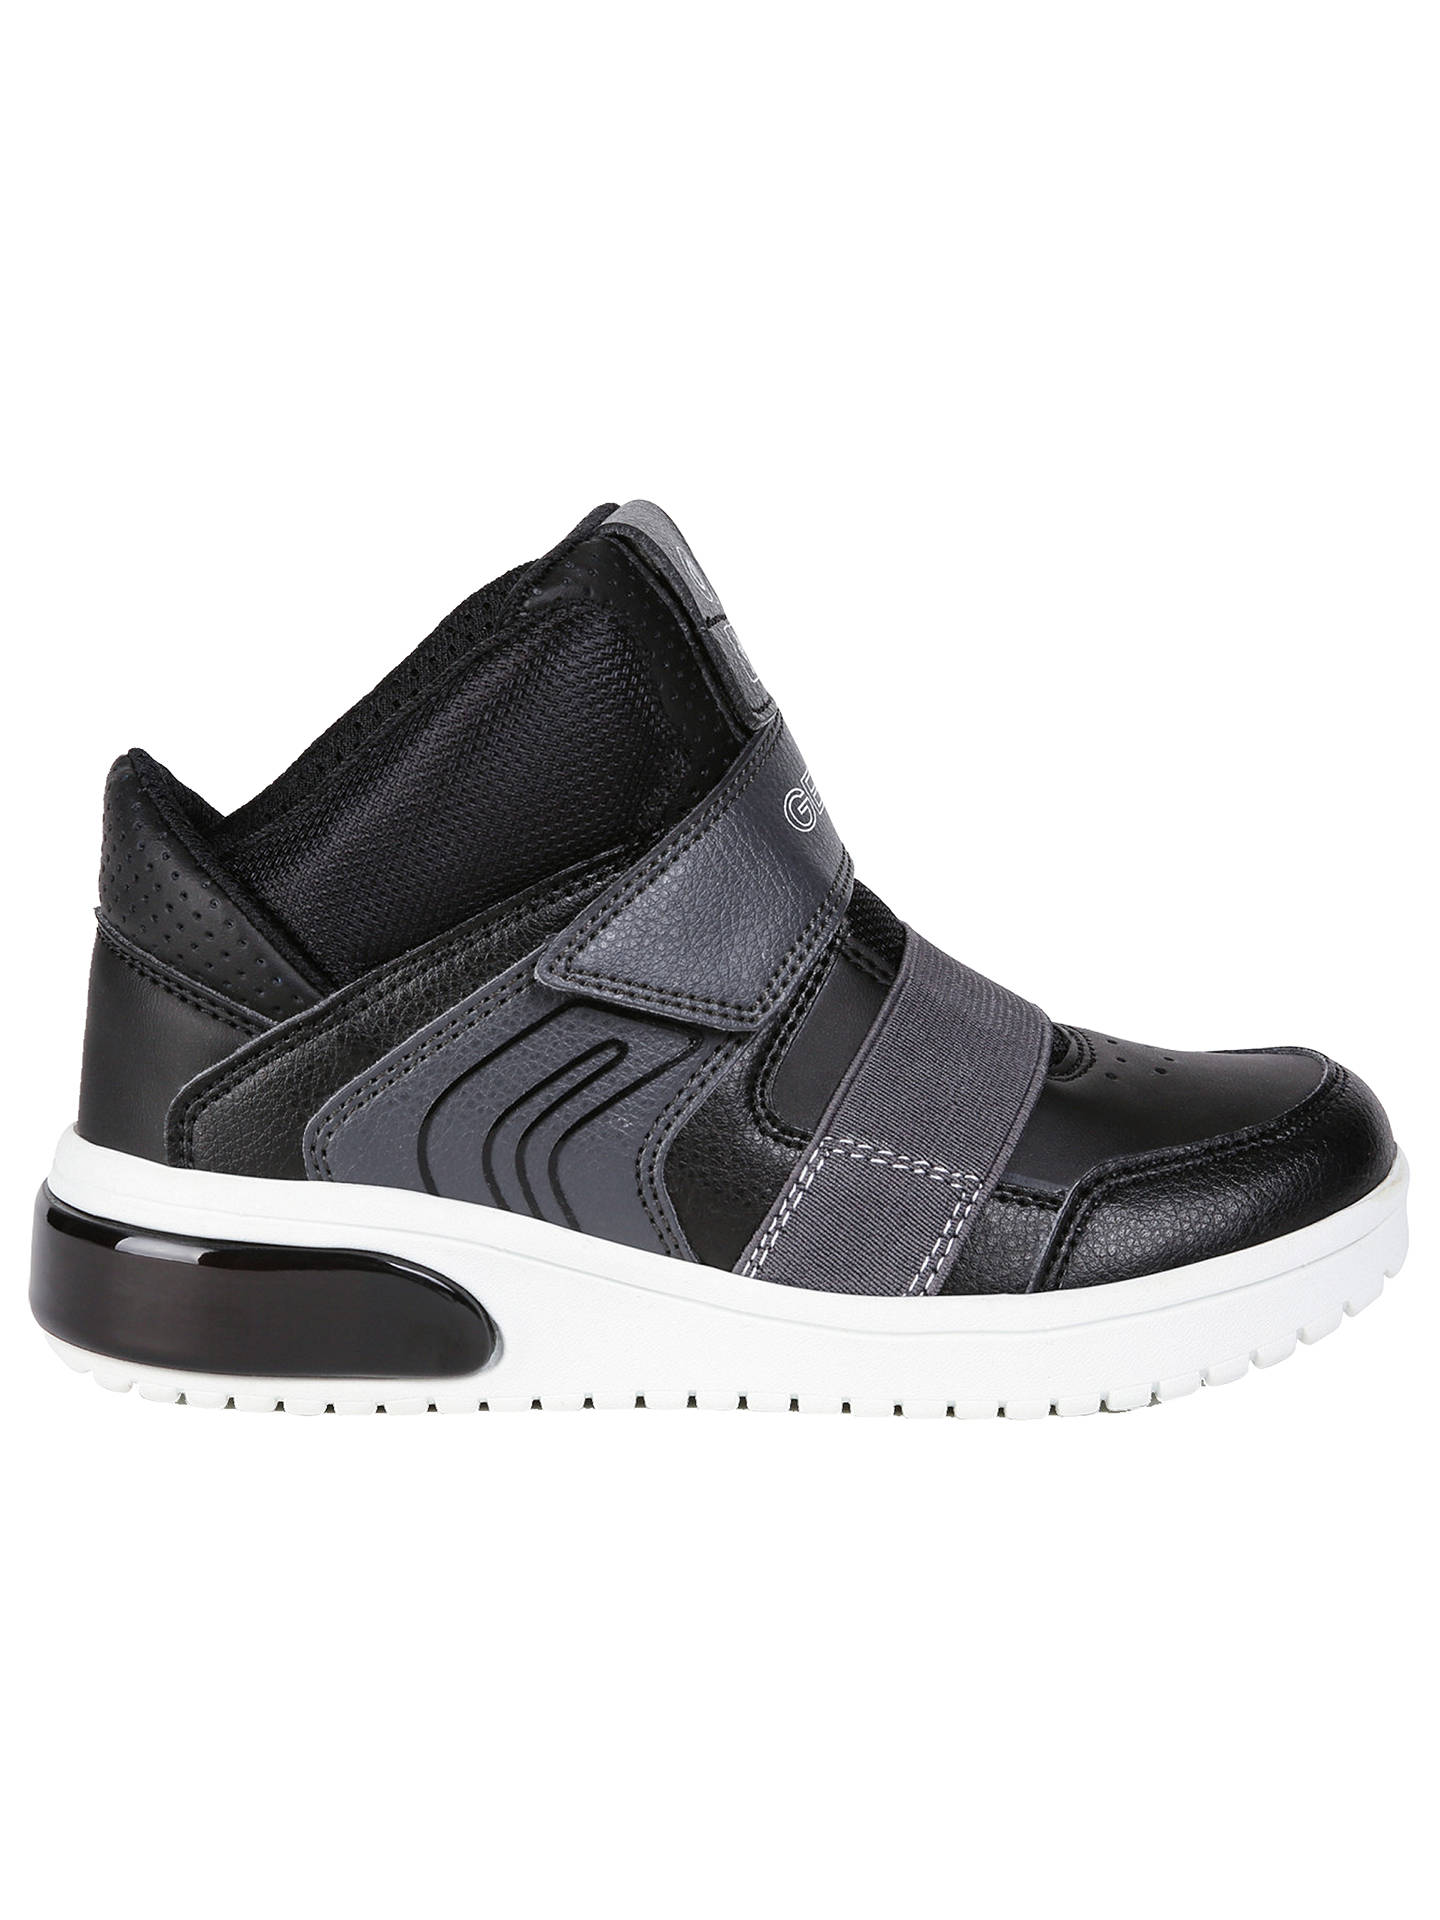 Geox XLED Hi Top Trainers at John Lewis & Partners